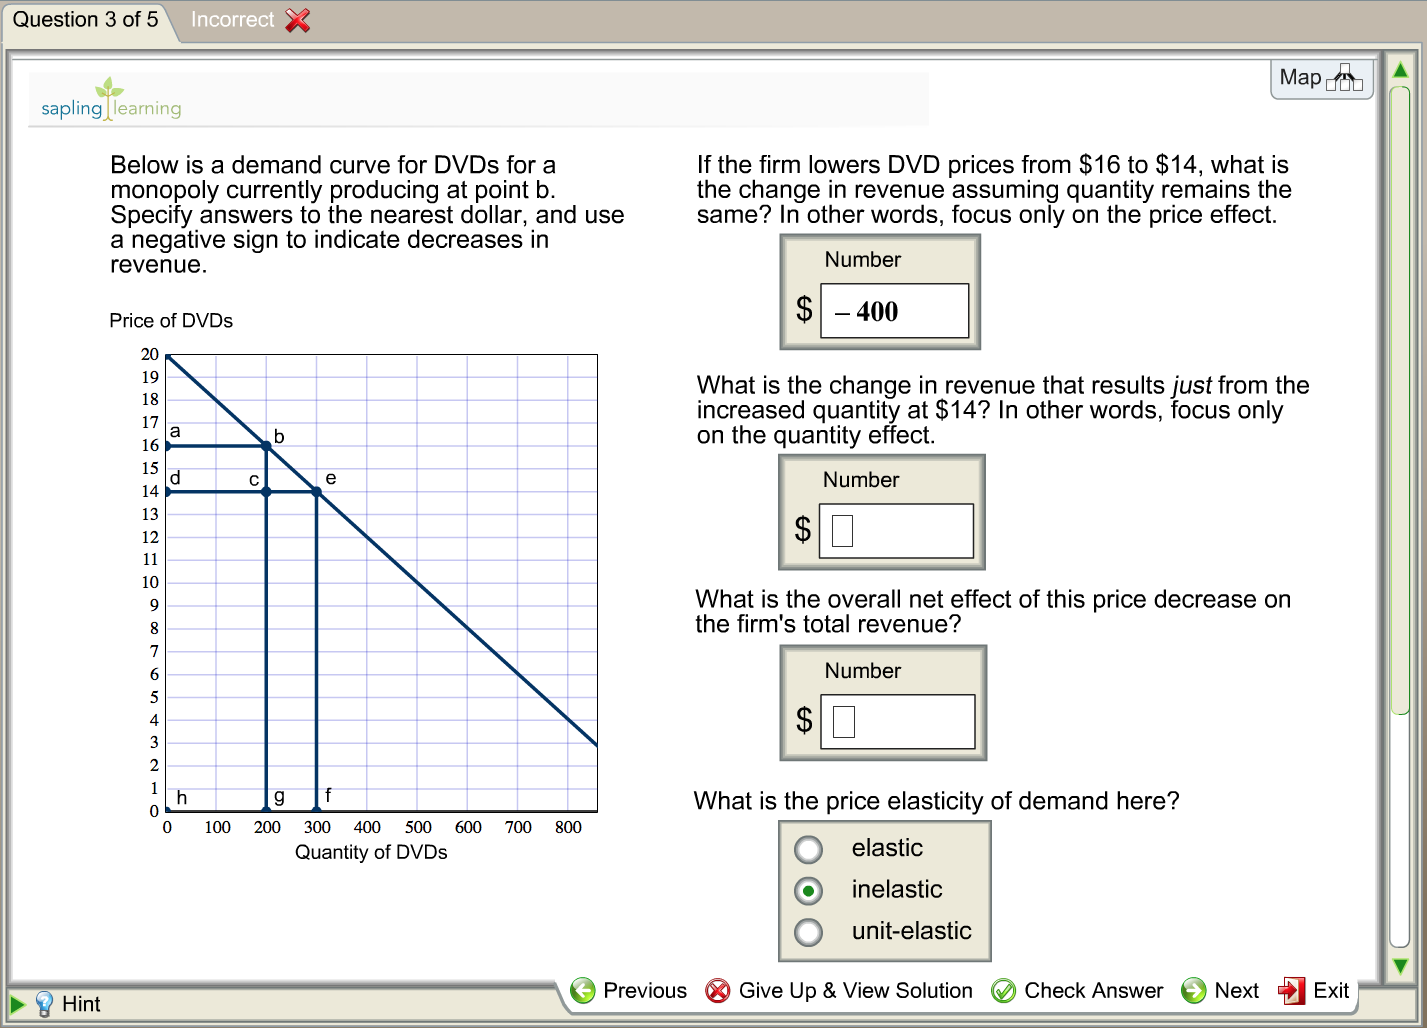 Solved: Below Is A Demand Curve For DVDs For A Monopoly Cu ...